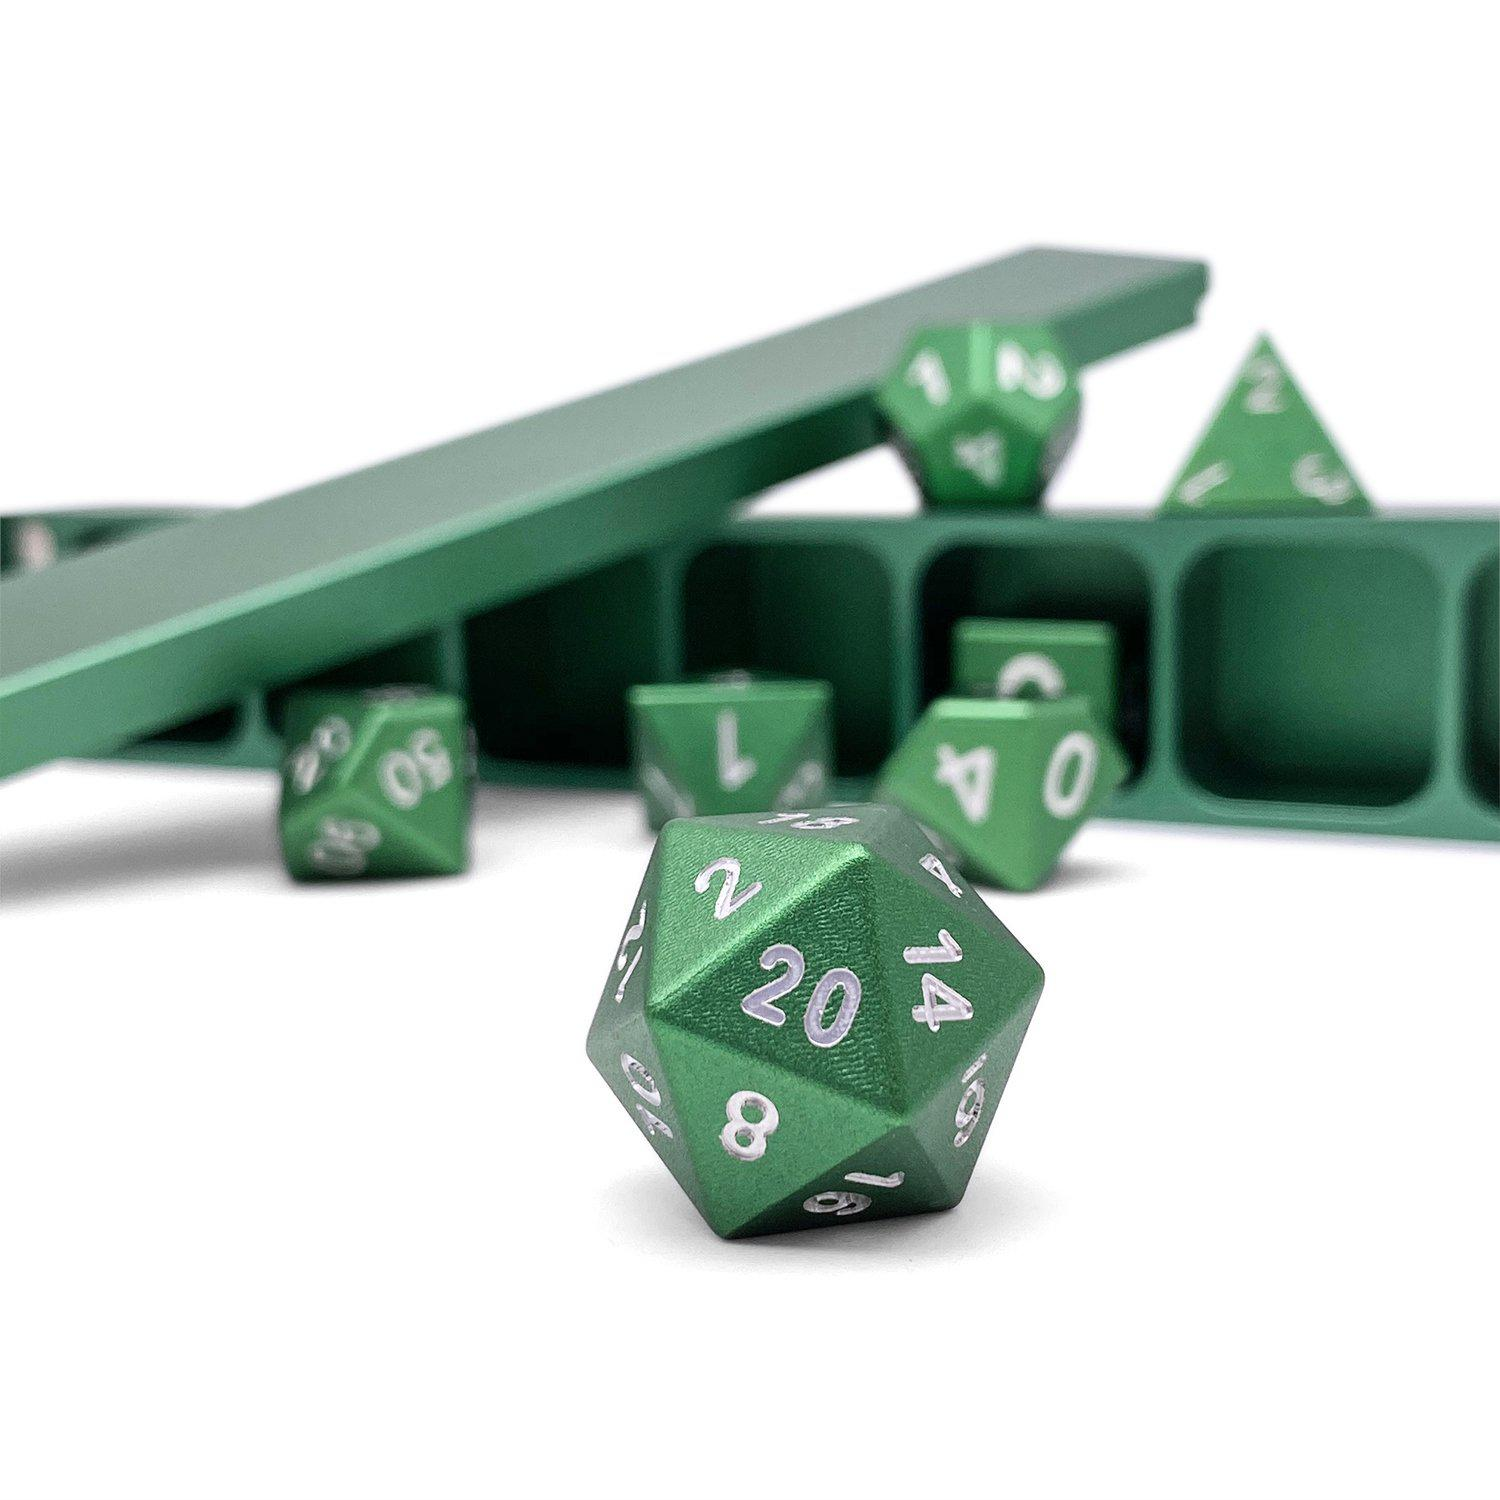 Precision CNC Aluminum Dice Set with Dice Vault – Druid Green